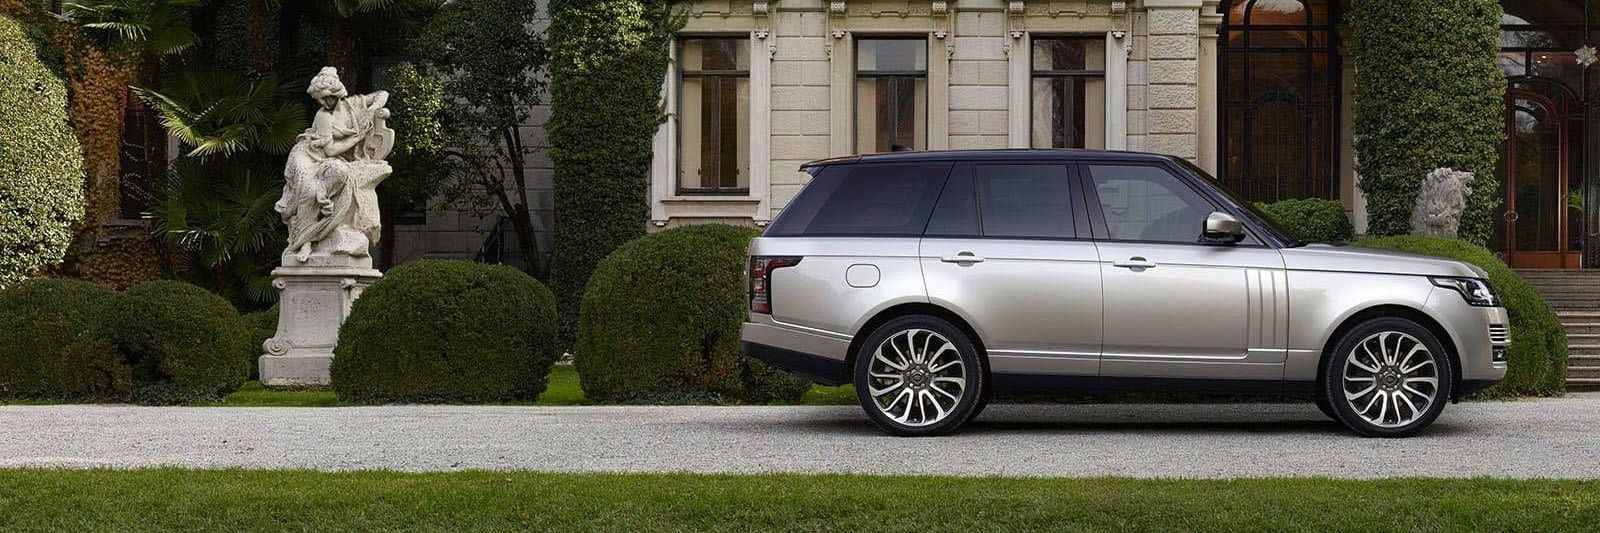 rover locator offers landrover ireland land overview and finance dealer